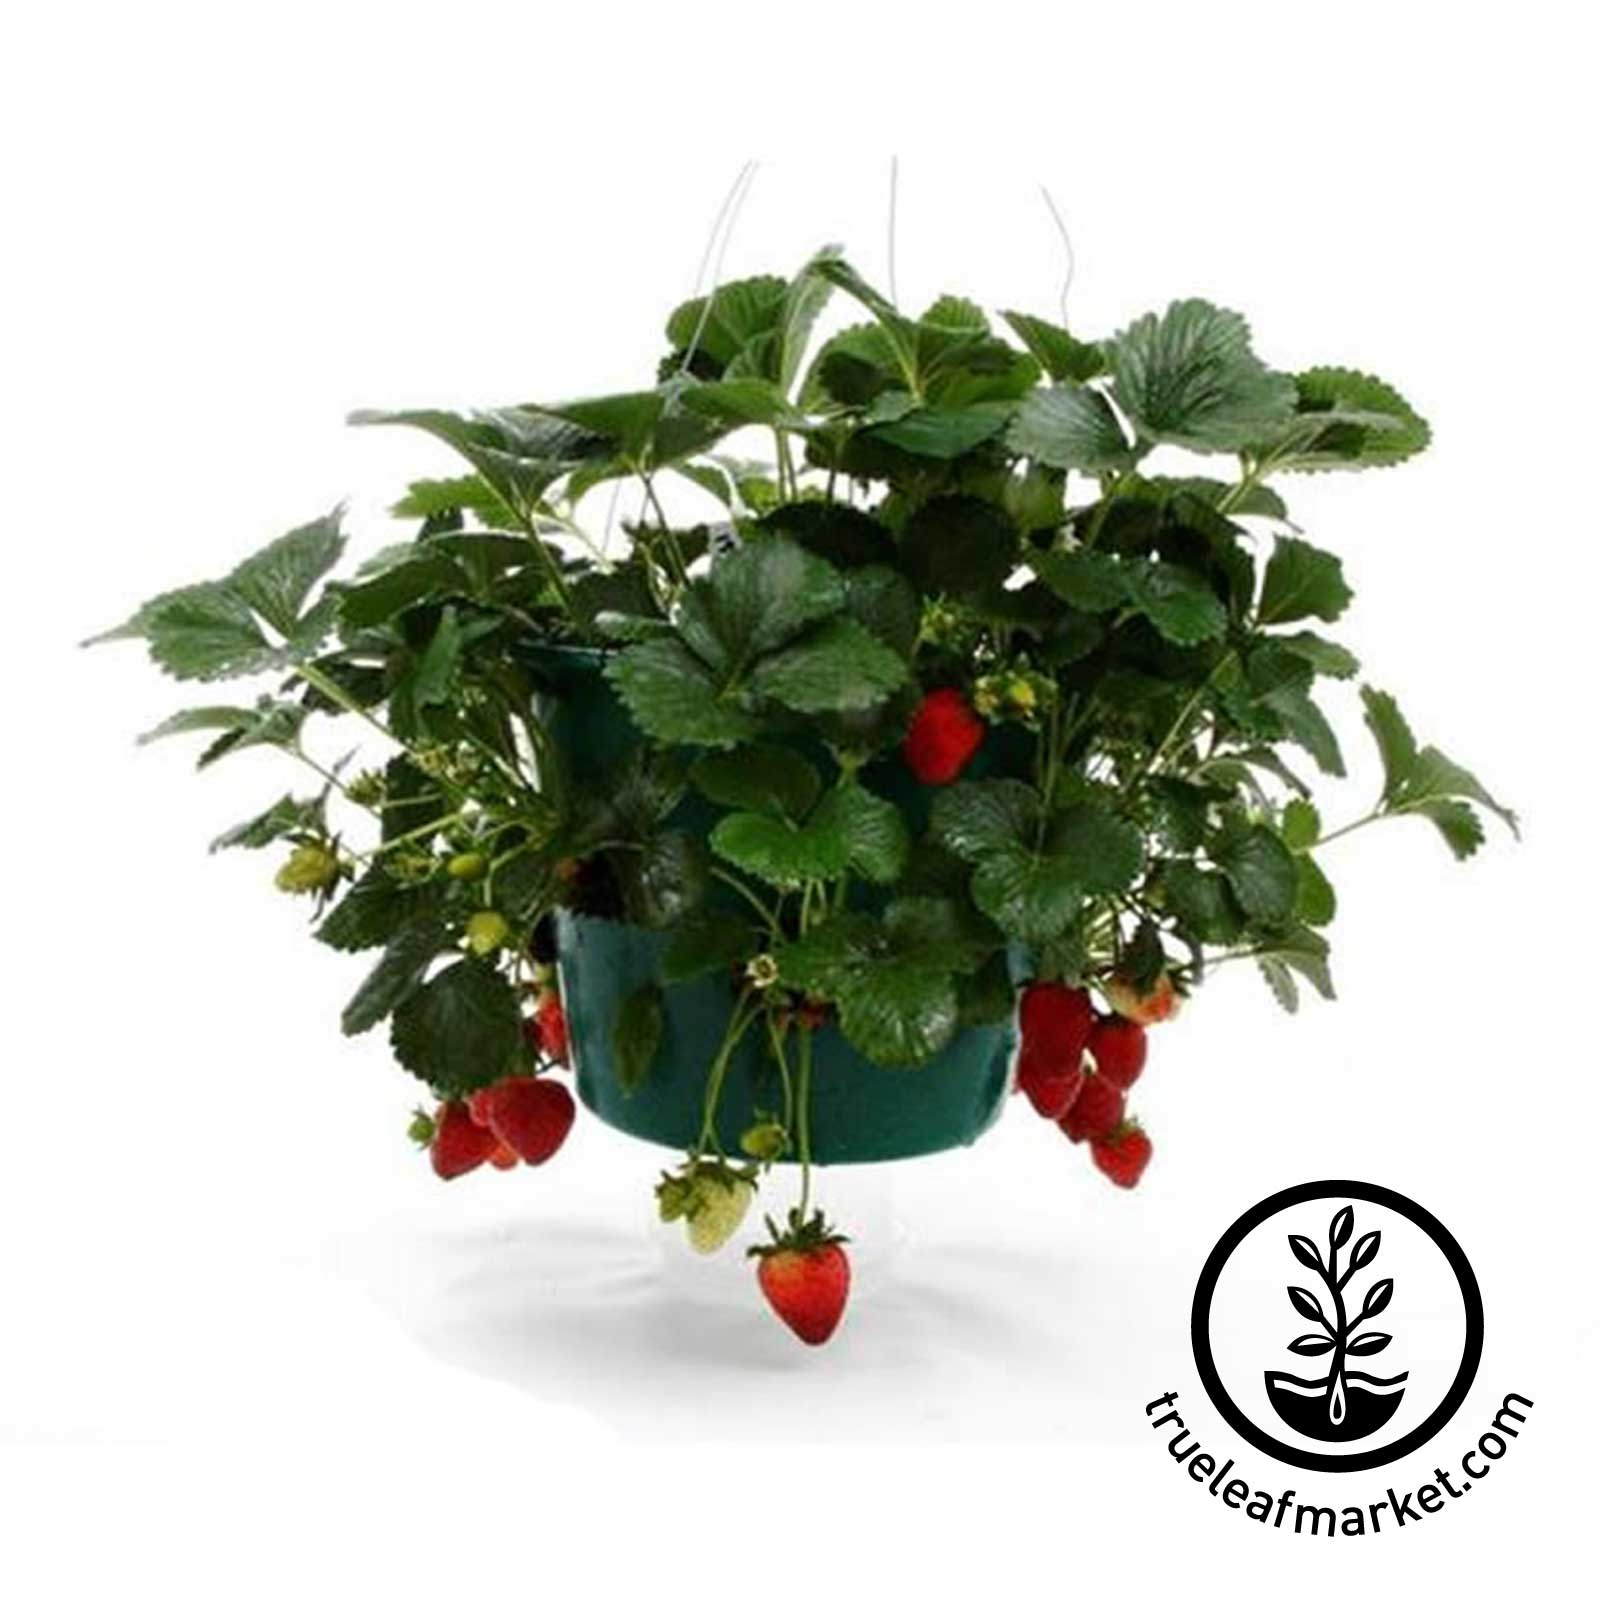 Hanging Strawberry Basket with Peat Pellets and Starting Tray